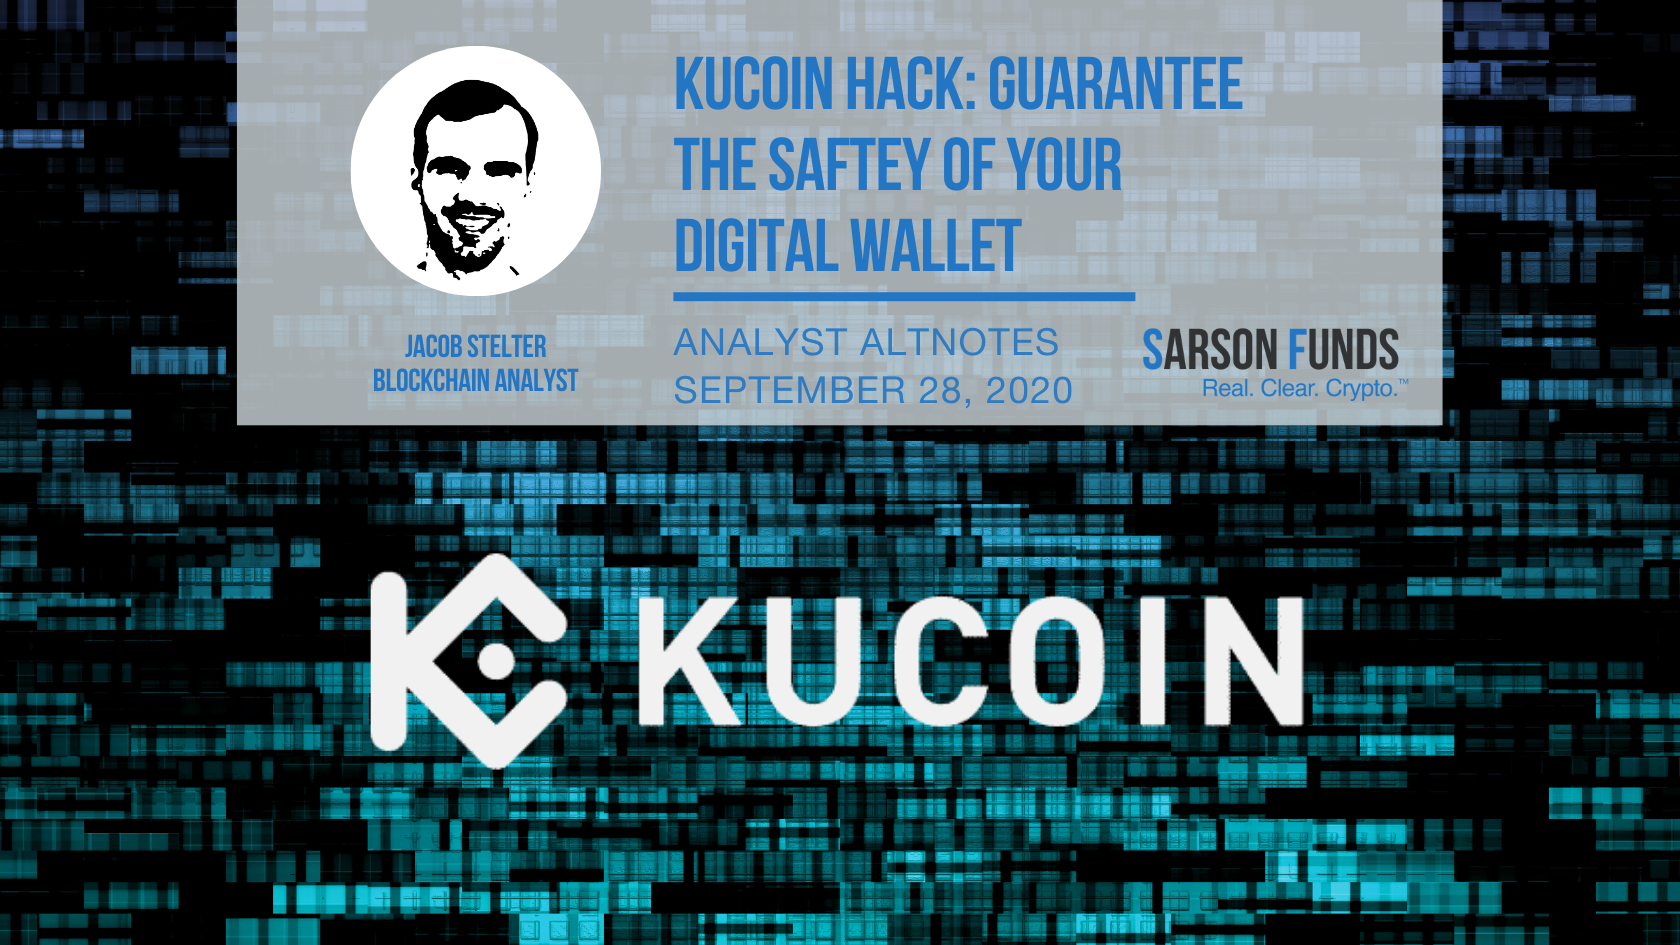 Sarson Funds: Protect Your Digital Assets After Kucoin Hack